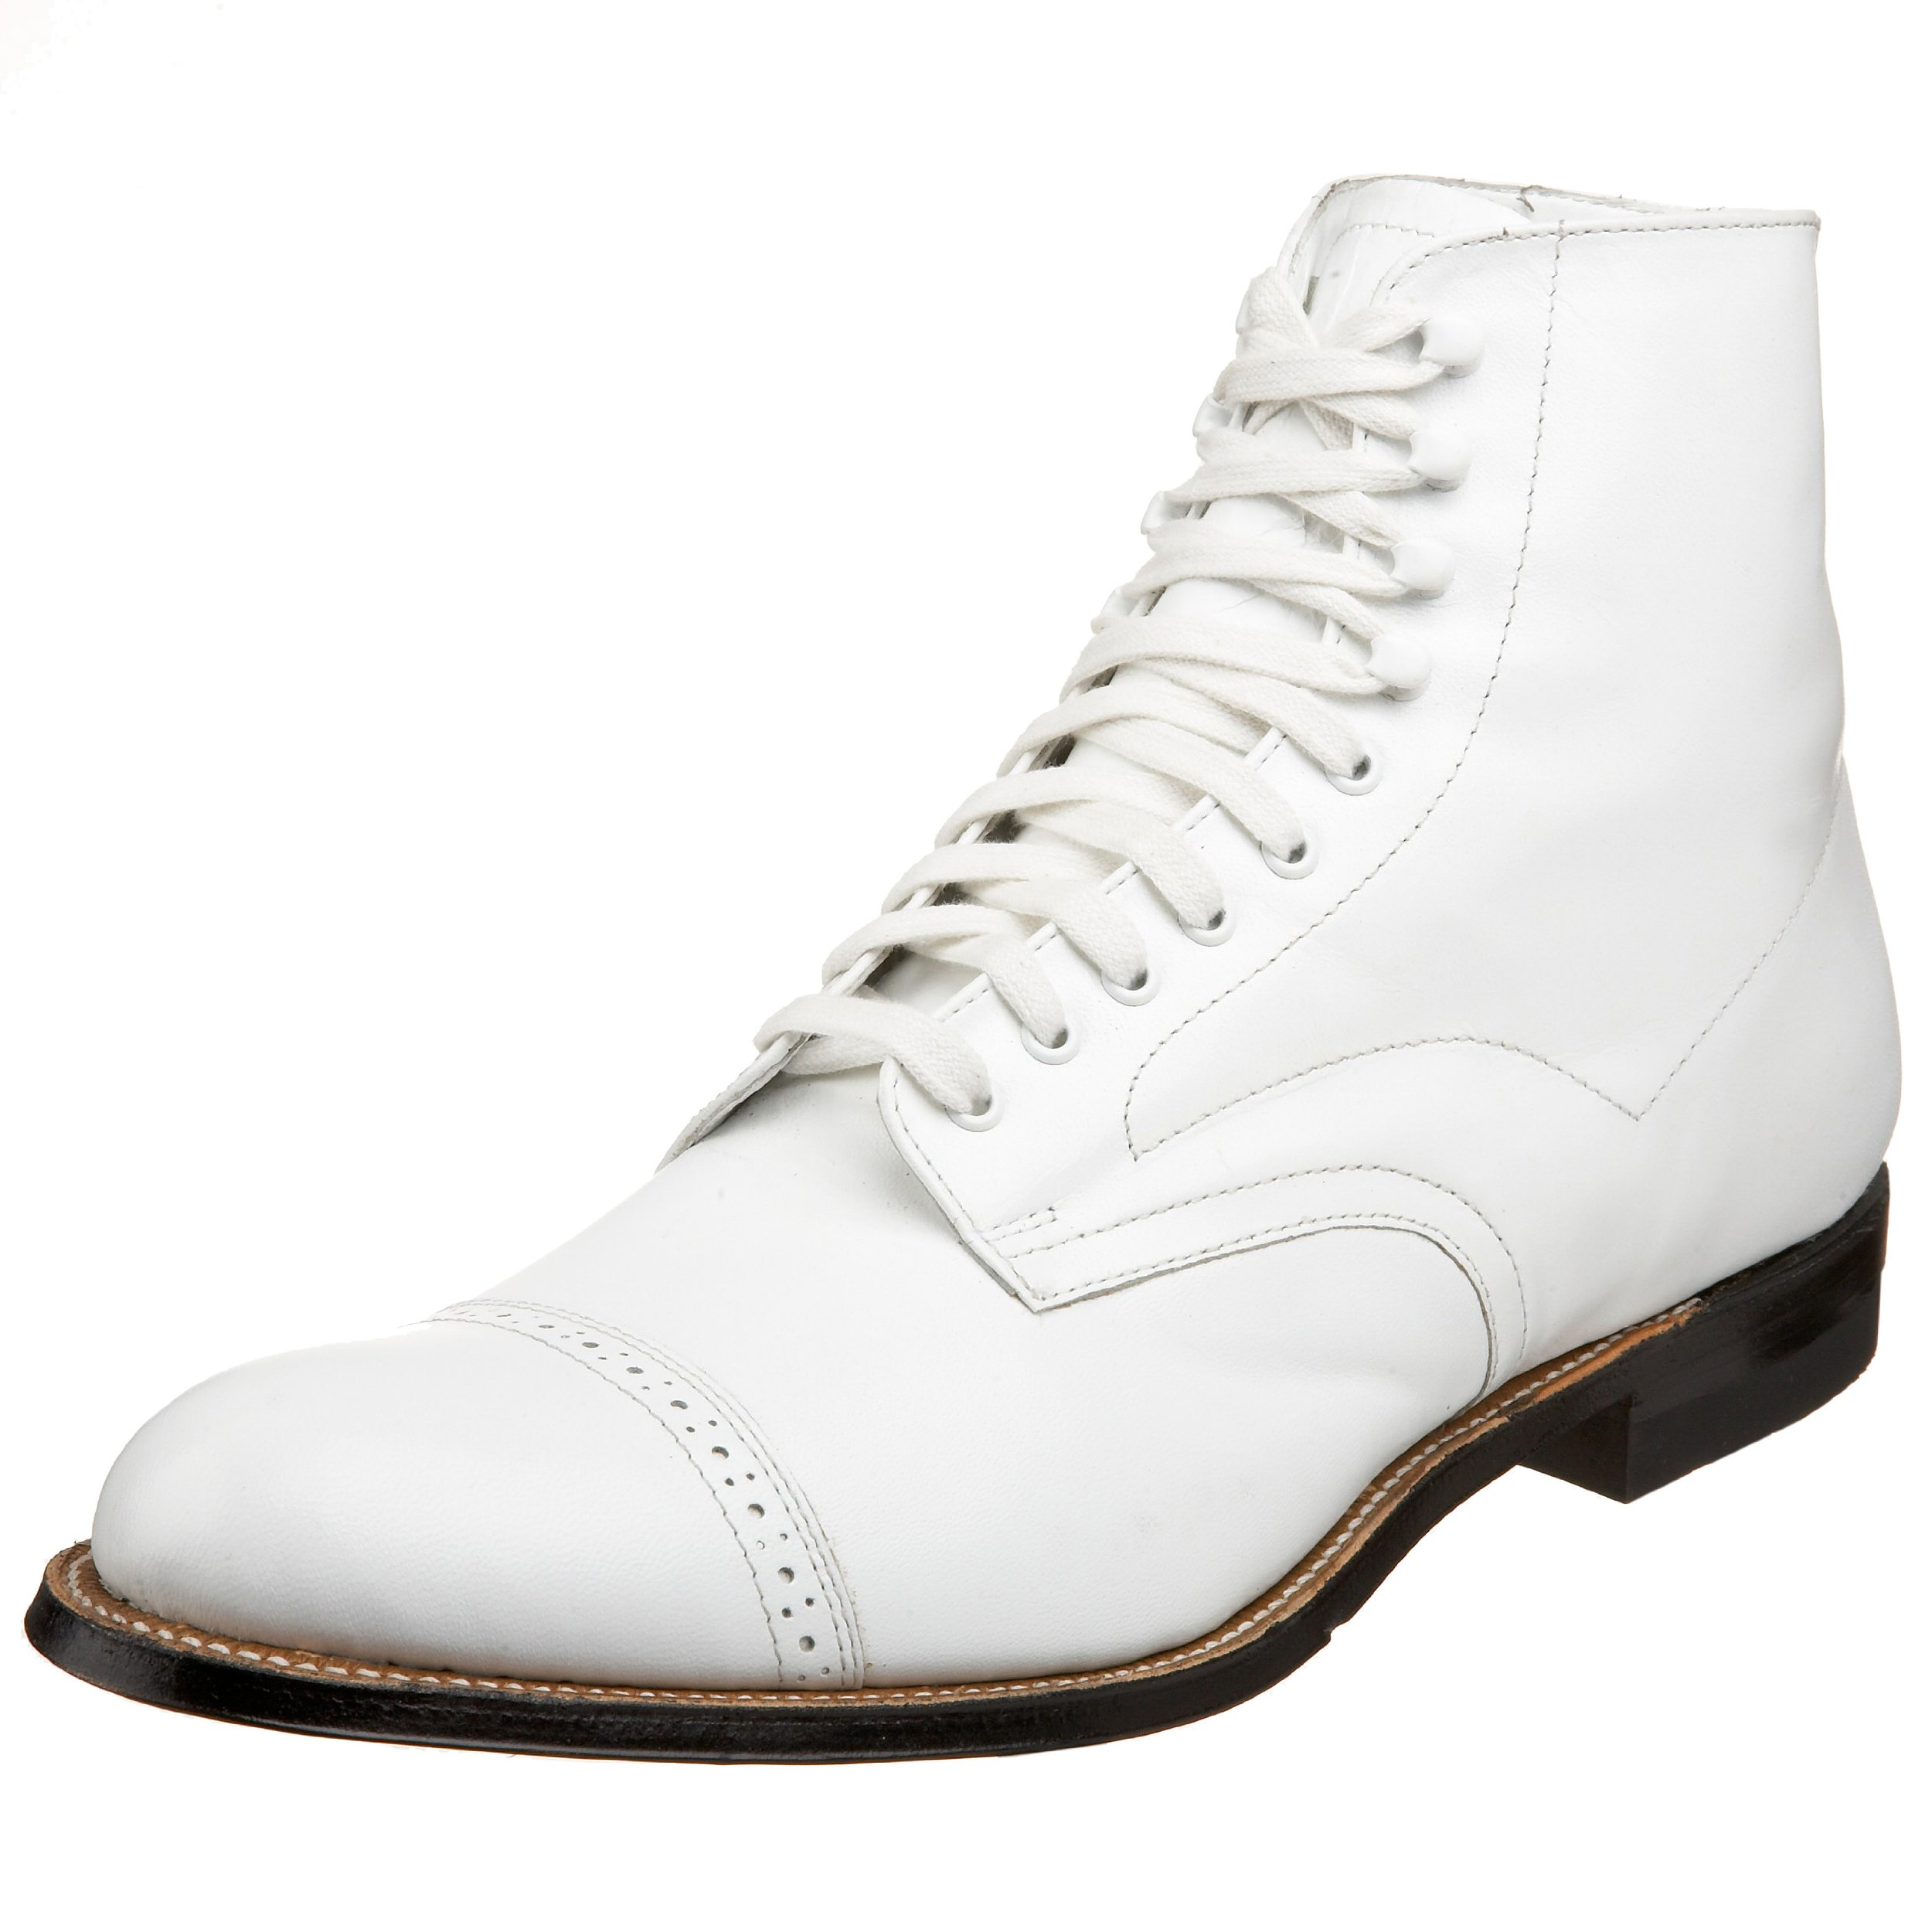 Stacy Adams Men's Madison Cap-Toe Boot,White,10 D by STACY ADAMS